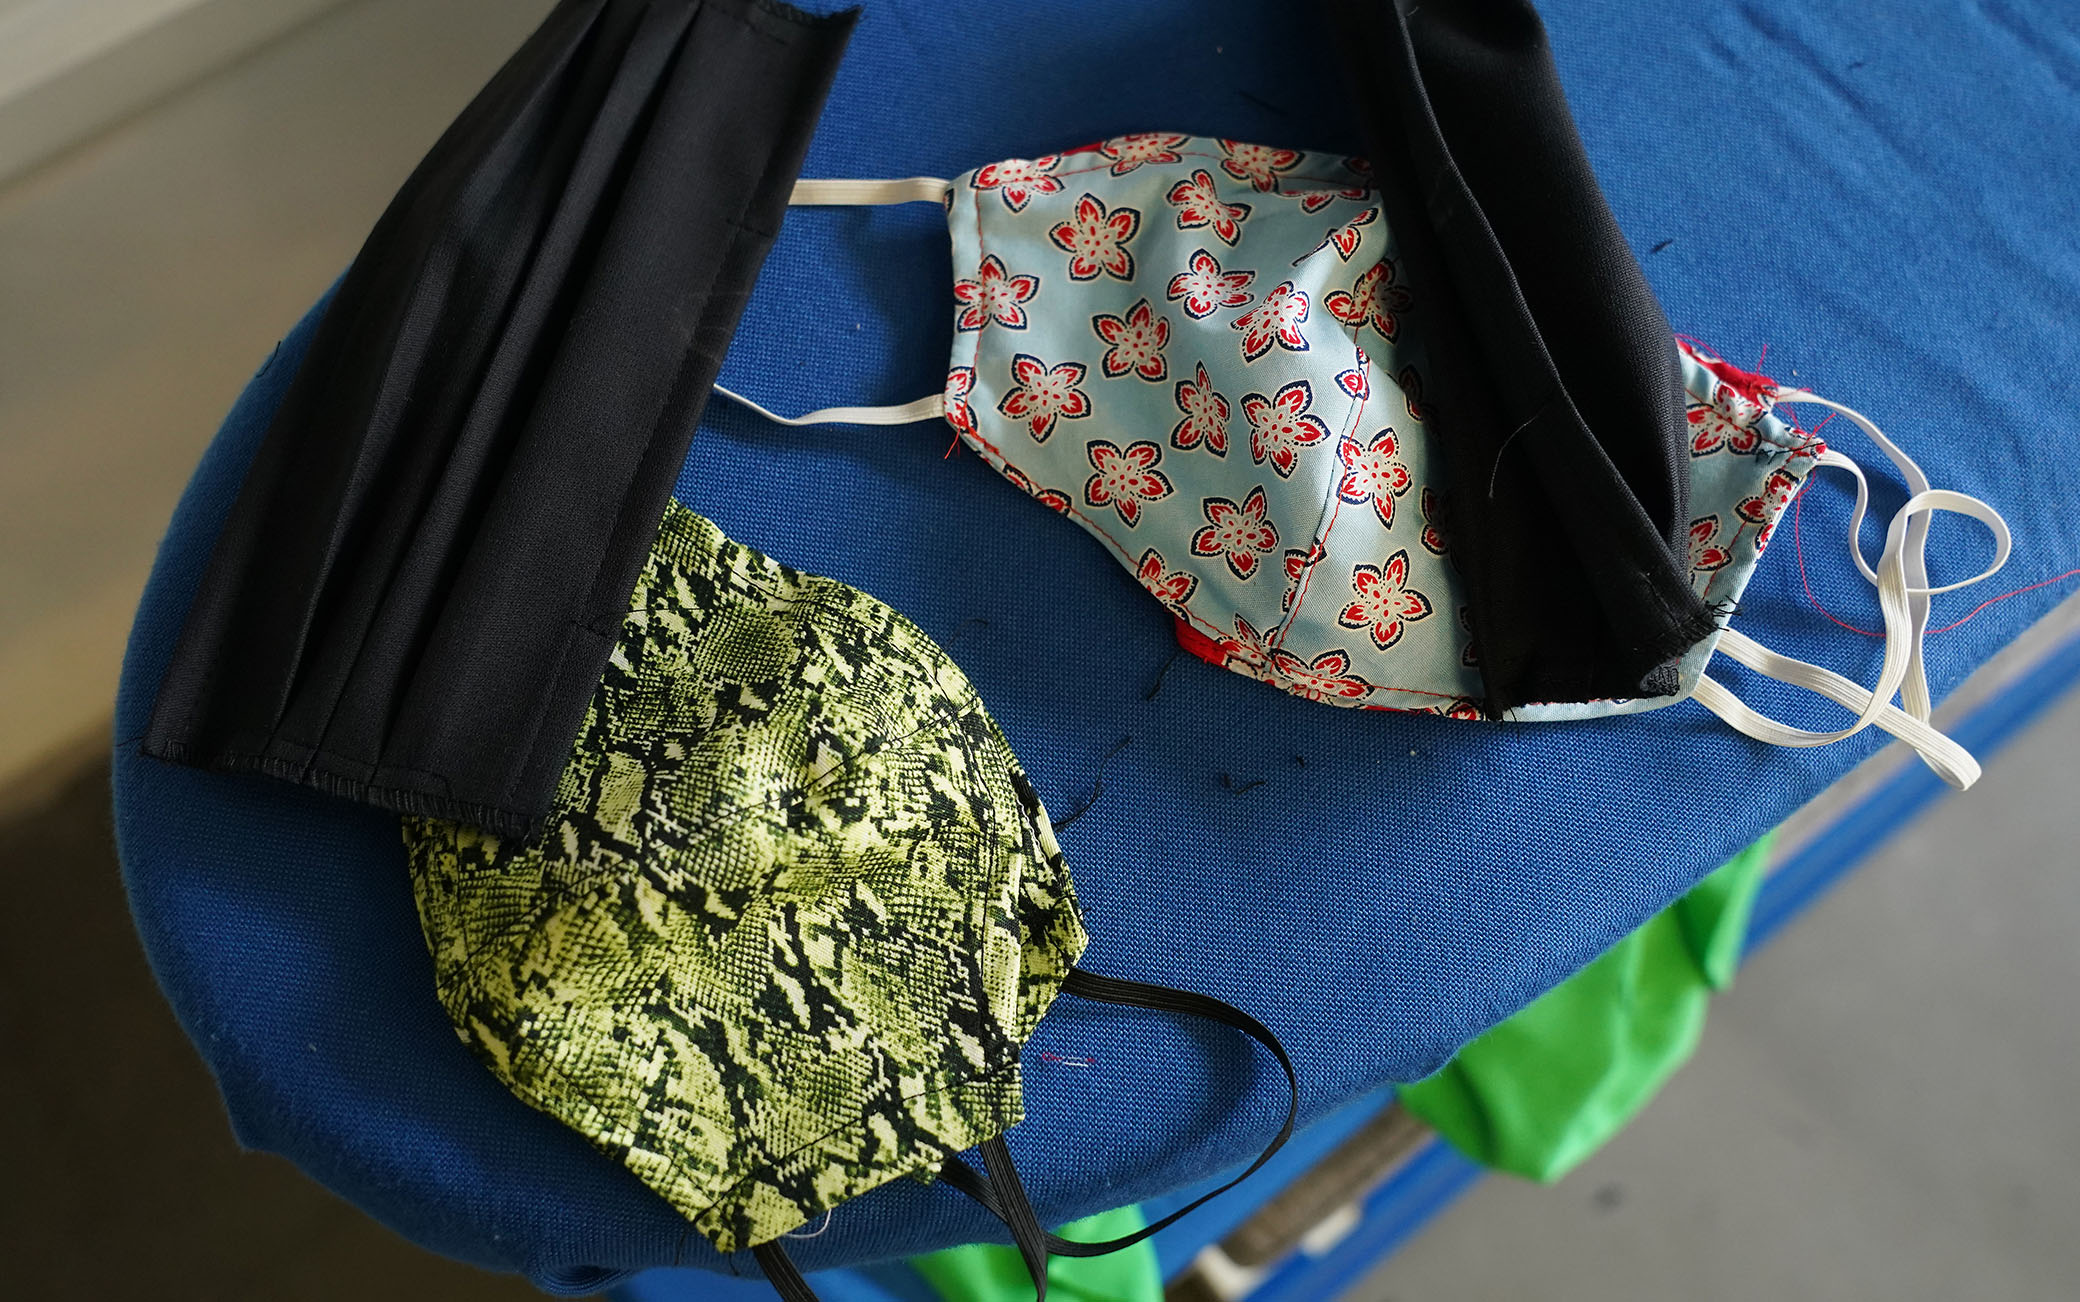 """BERLIN, GERMANY - APRIL 02: Made-to-order protective face masks lie on an ironing board at the workshop of master tailor Ala Hadye on April 02, 2020 in Berlin, Germany. Hadye, who has had to close her shop due to nationwide measures enacted to slow the spread of the coronavirus, says she is making 30 to 40 masks per week on custom order from her customers. """"I could be making masks all week,"""" she said, but says she turns large orders down and concentrates instead on her core customers. """"There are so many others making masks"""", she says of other tailors she knows. Since her shop is closed she sends the masks to her customers by post rather than having them come to the shop. (Photo by Sean Gallup/Getty Images)"""